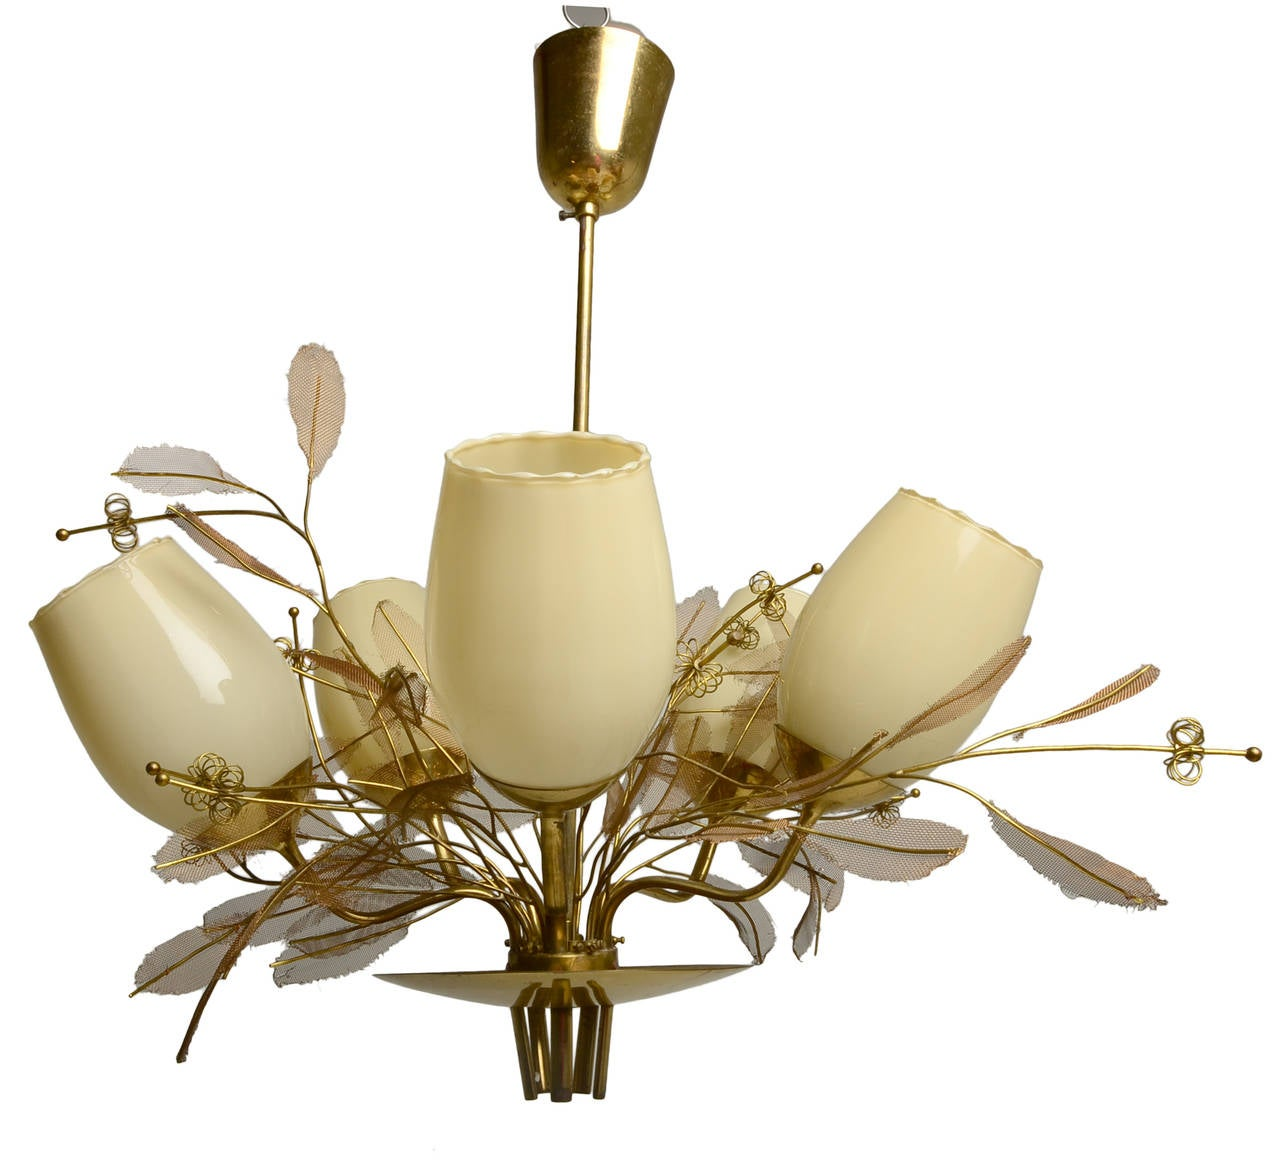 An incredible solid brass five-arm chandelier by Paavo Tynell for Taito Oy. Model 9029/5. An iconic Scandinavian piece by the master of Scandinavian lighting.